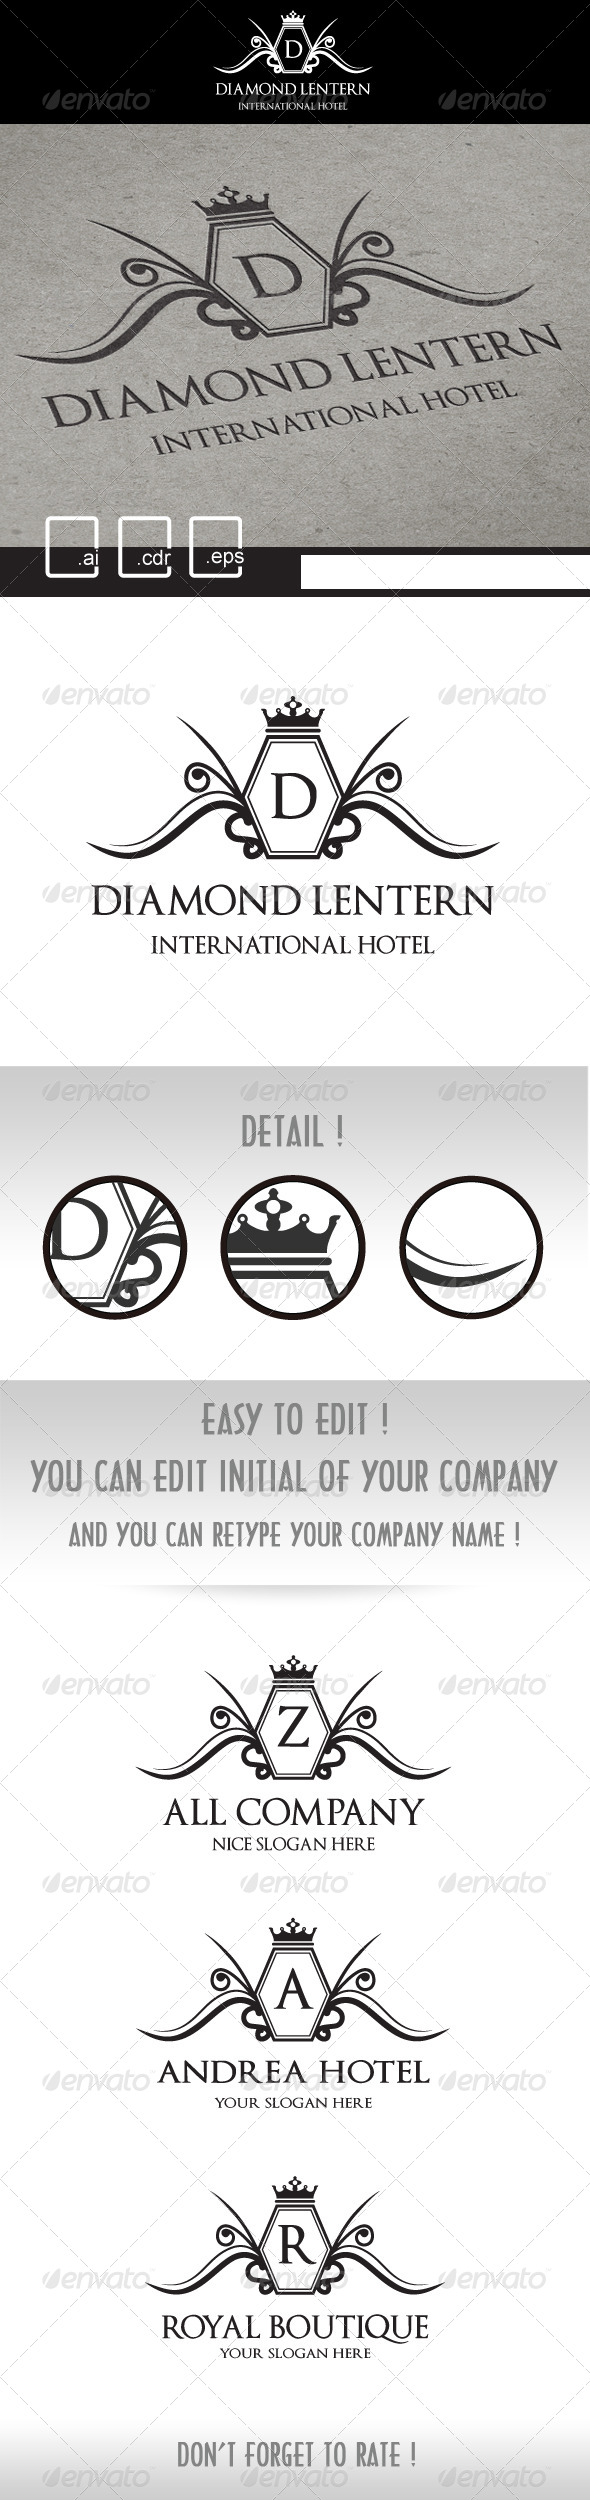 GraphicRiver Diamond Lentern Royal Crest Logo 5191352